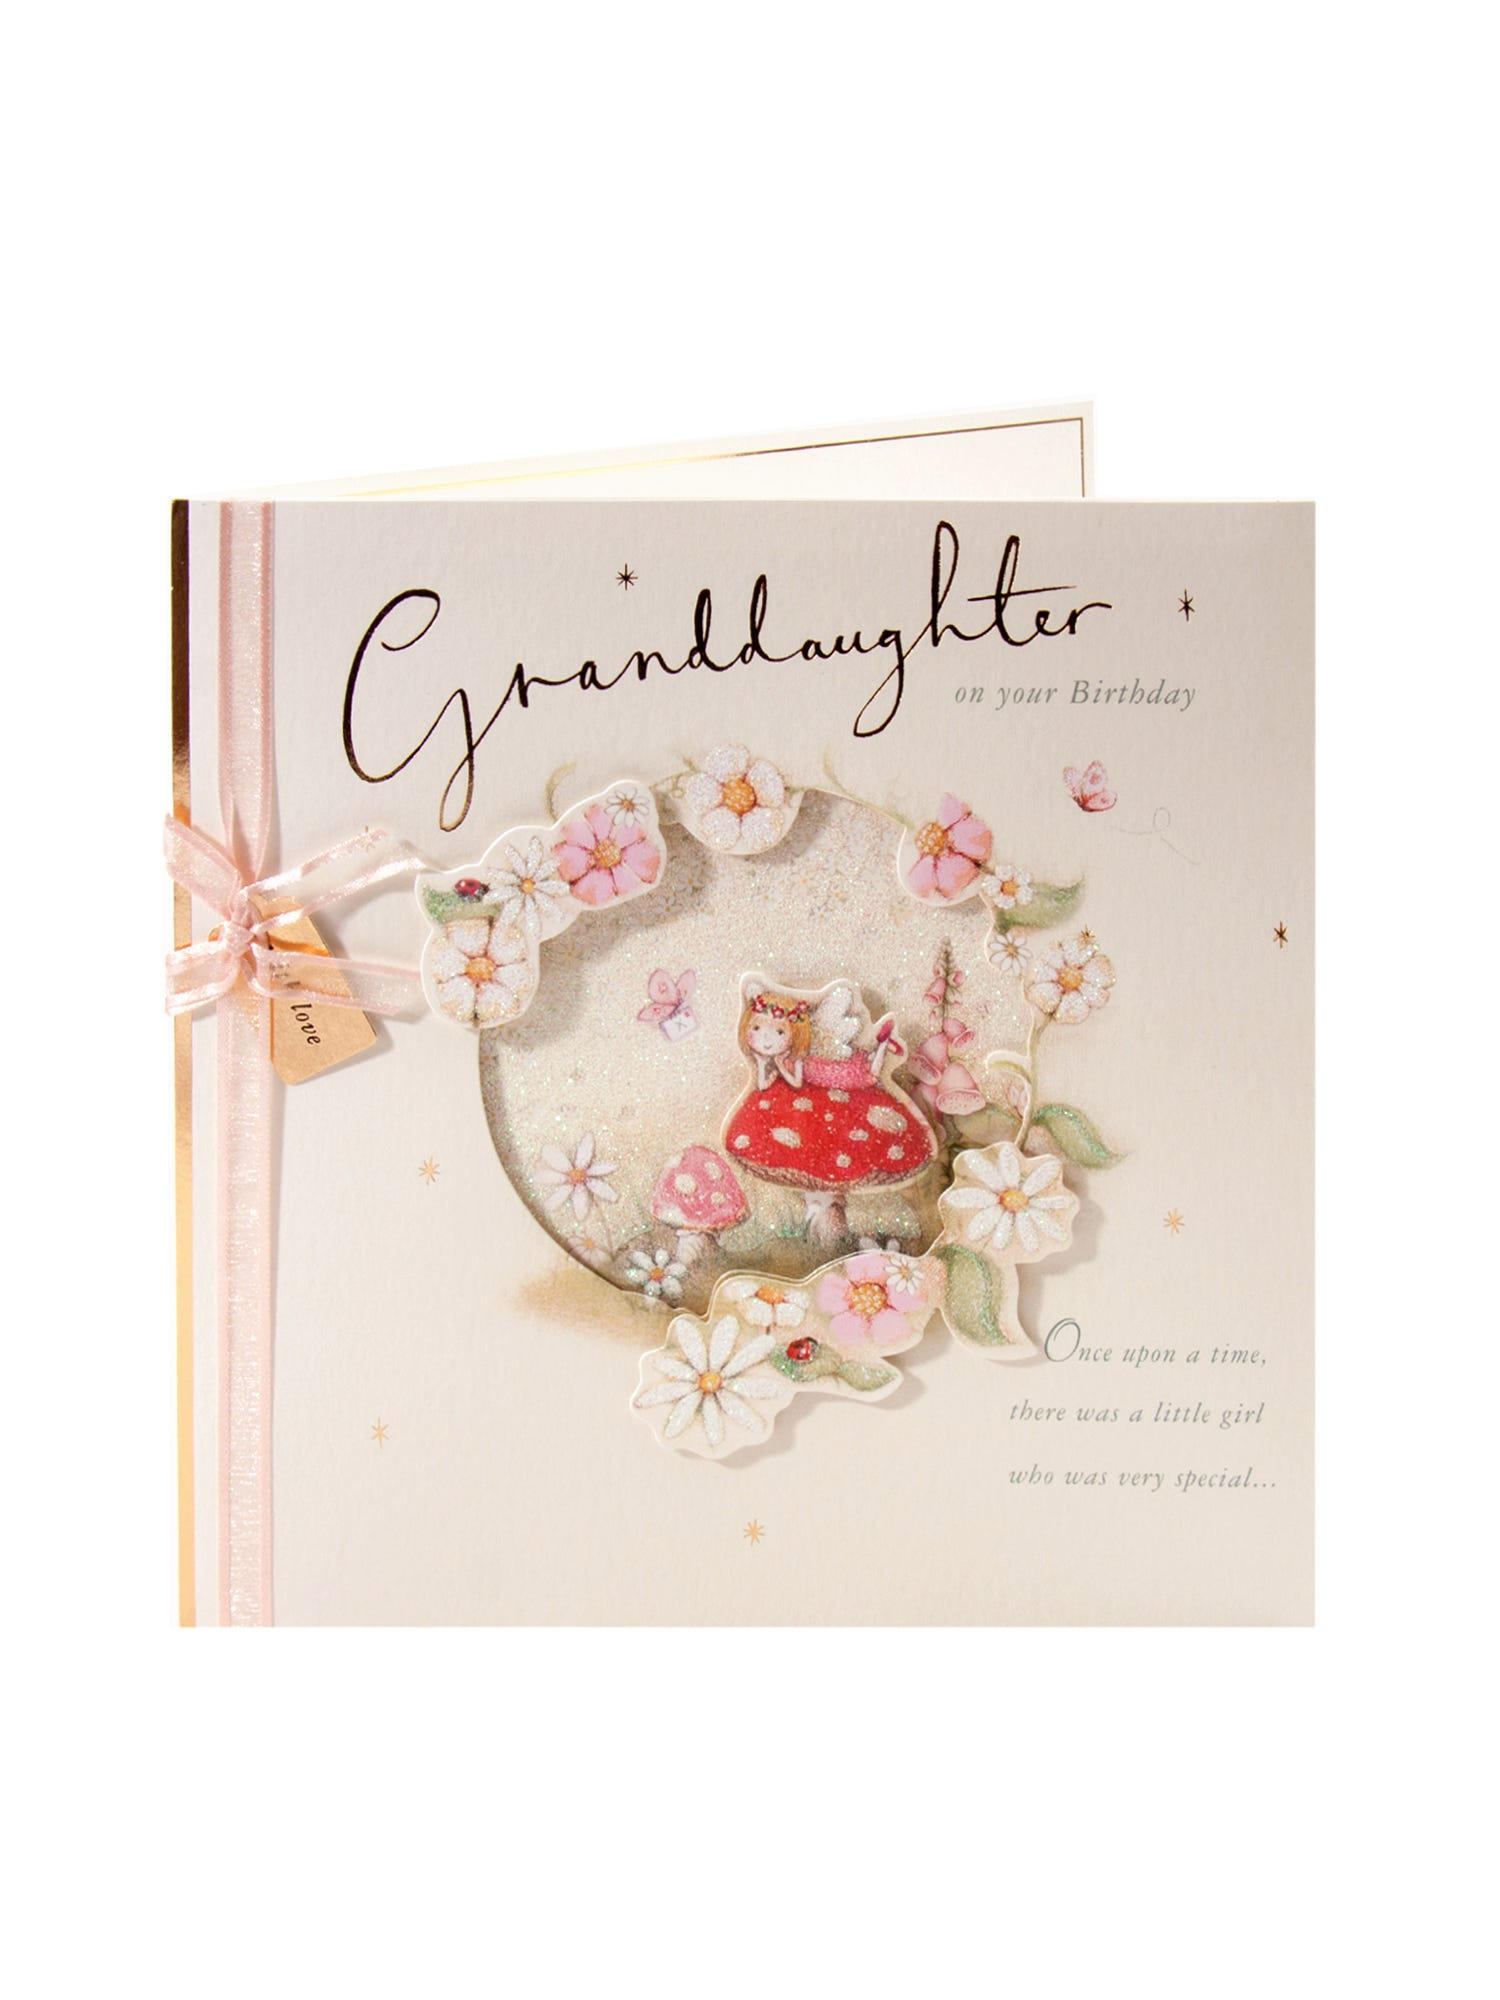 Granddaughters Prom Dress Birthday Card